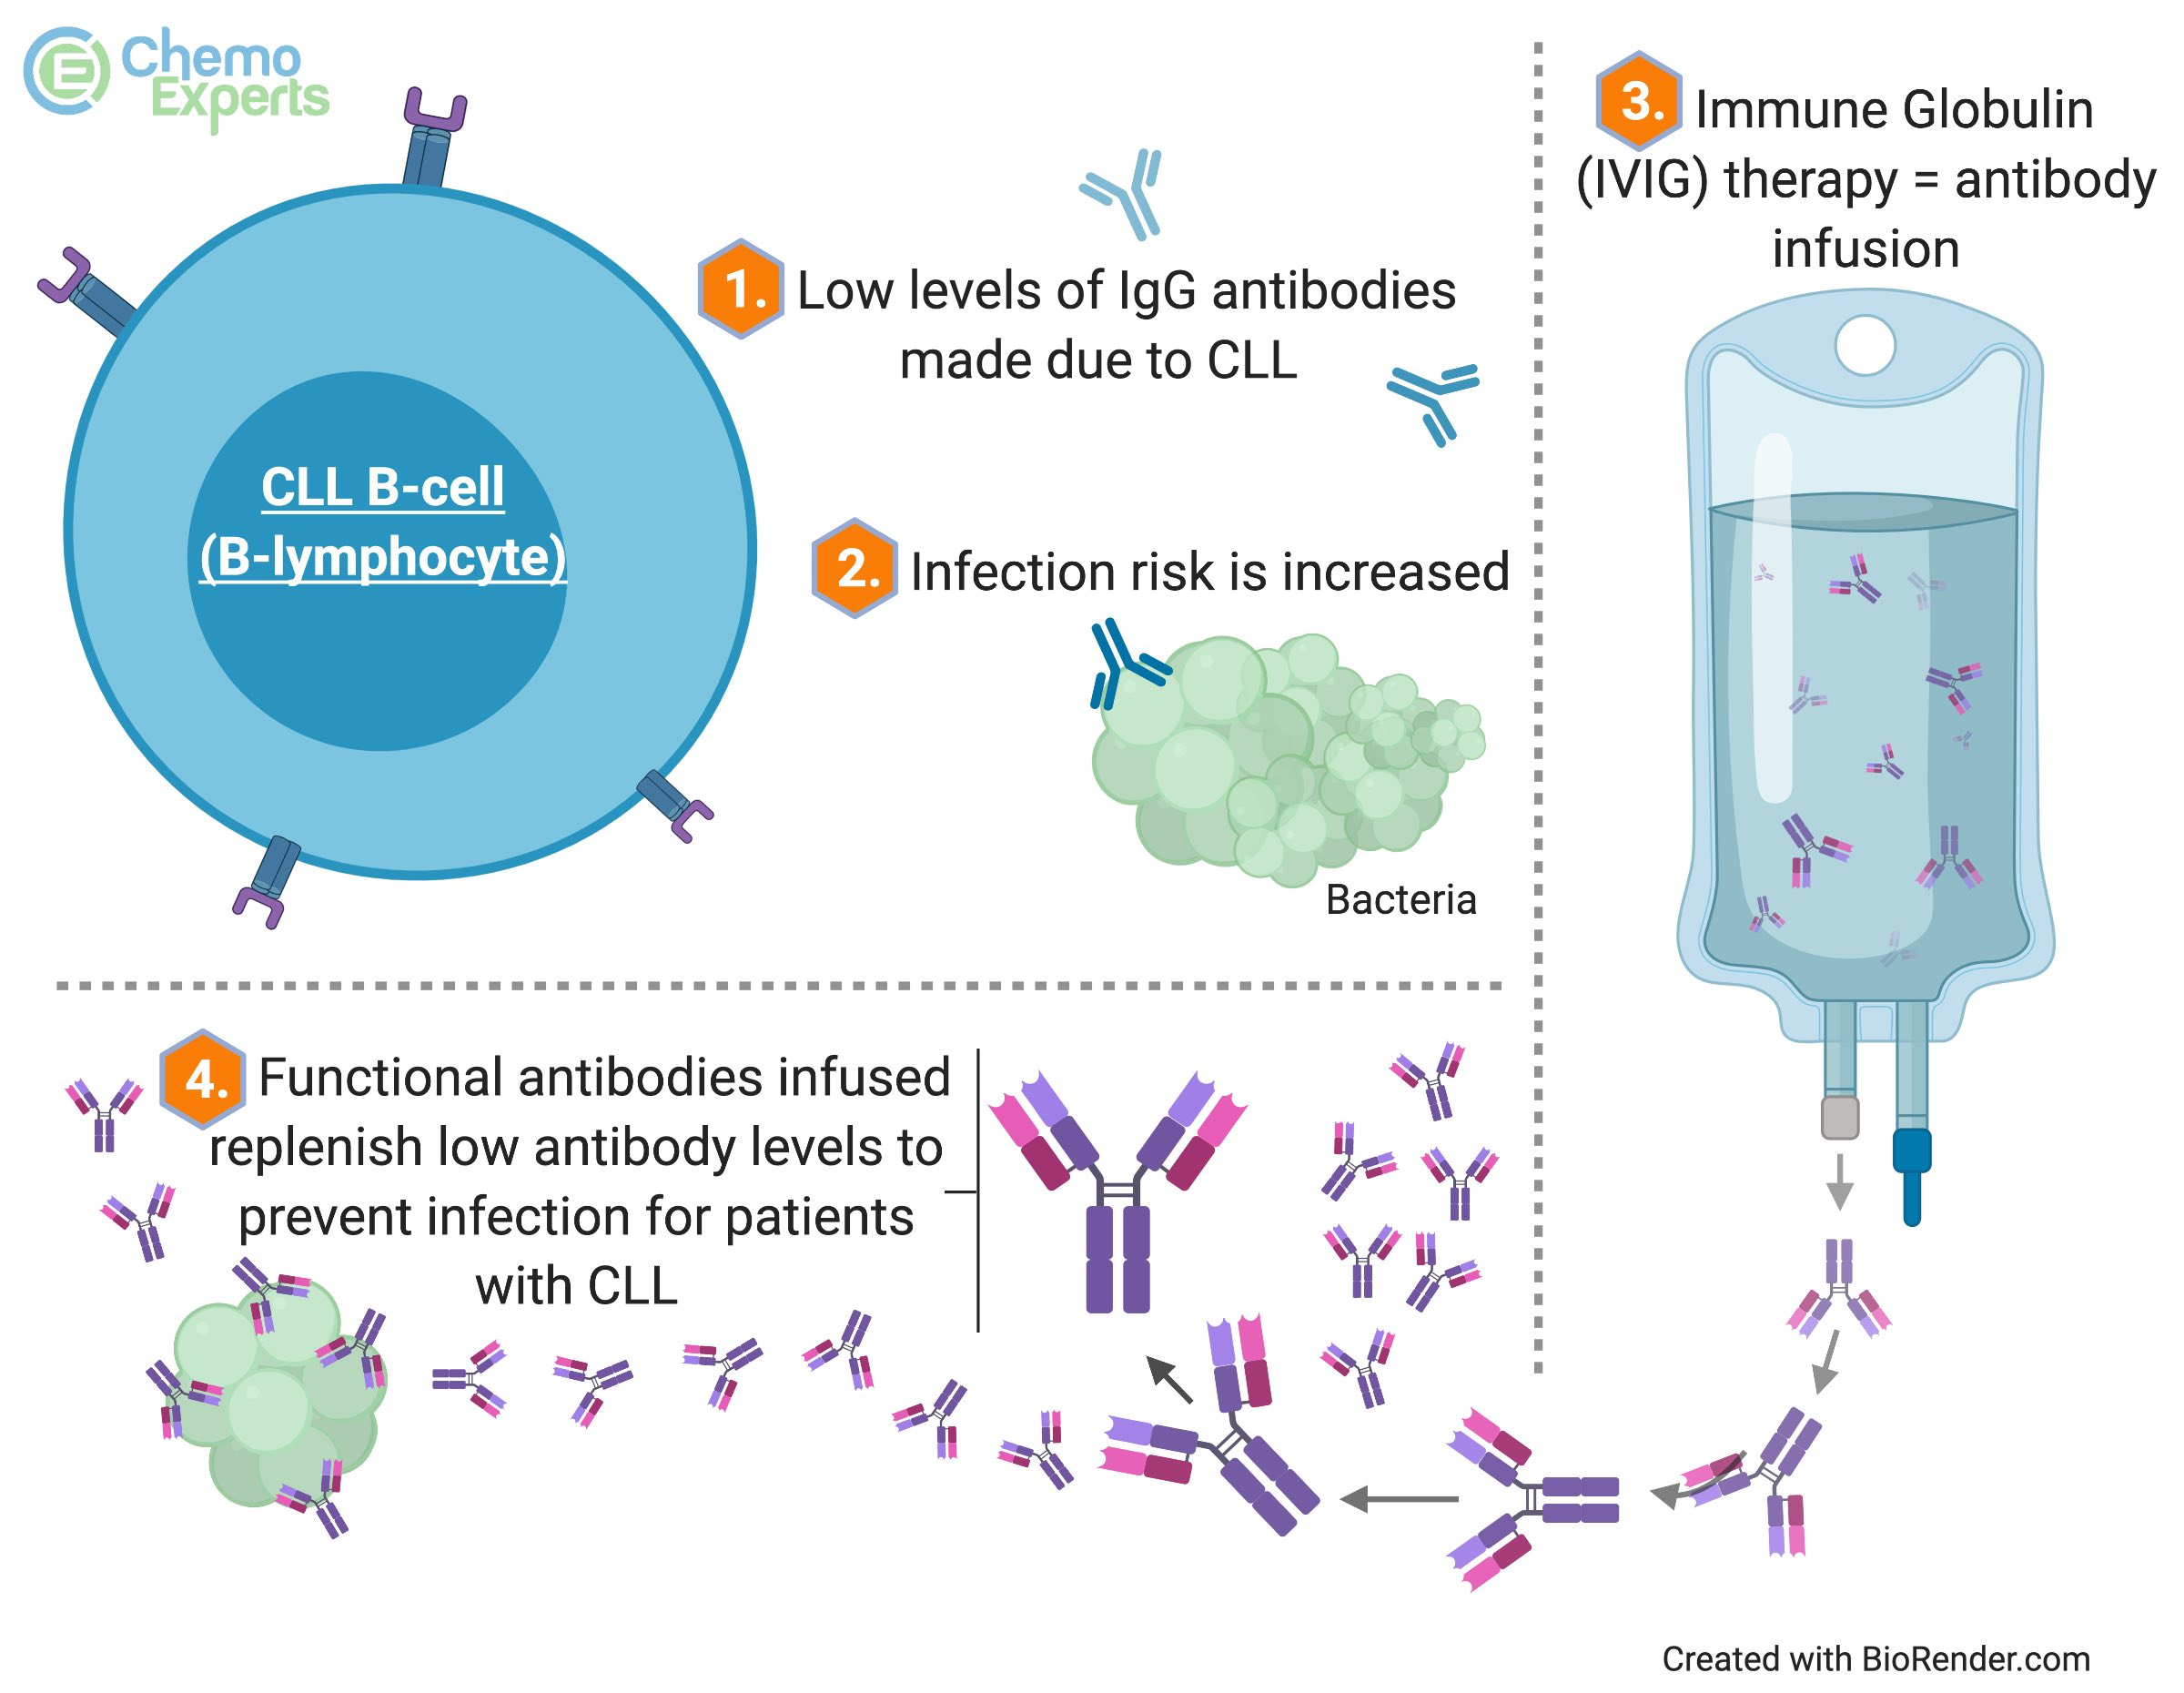 Image showing how IVIG may prevent severe infections in patients with CLL and hypogammaglobulinemia